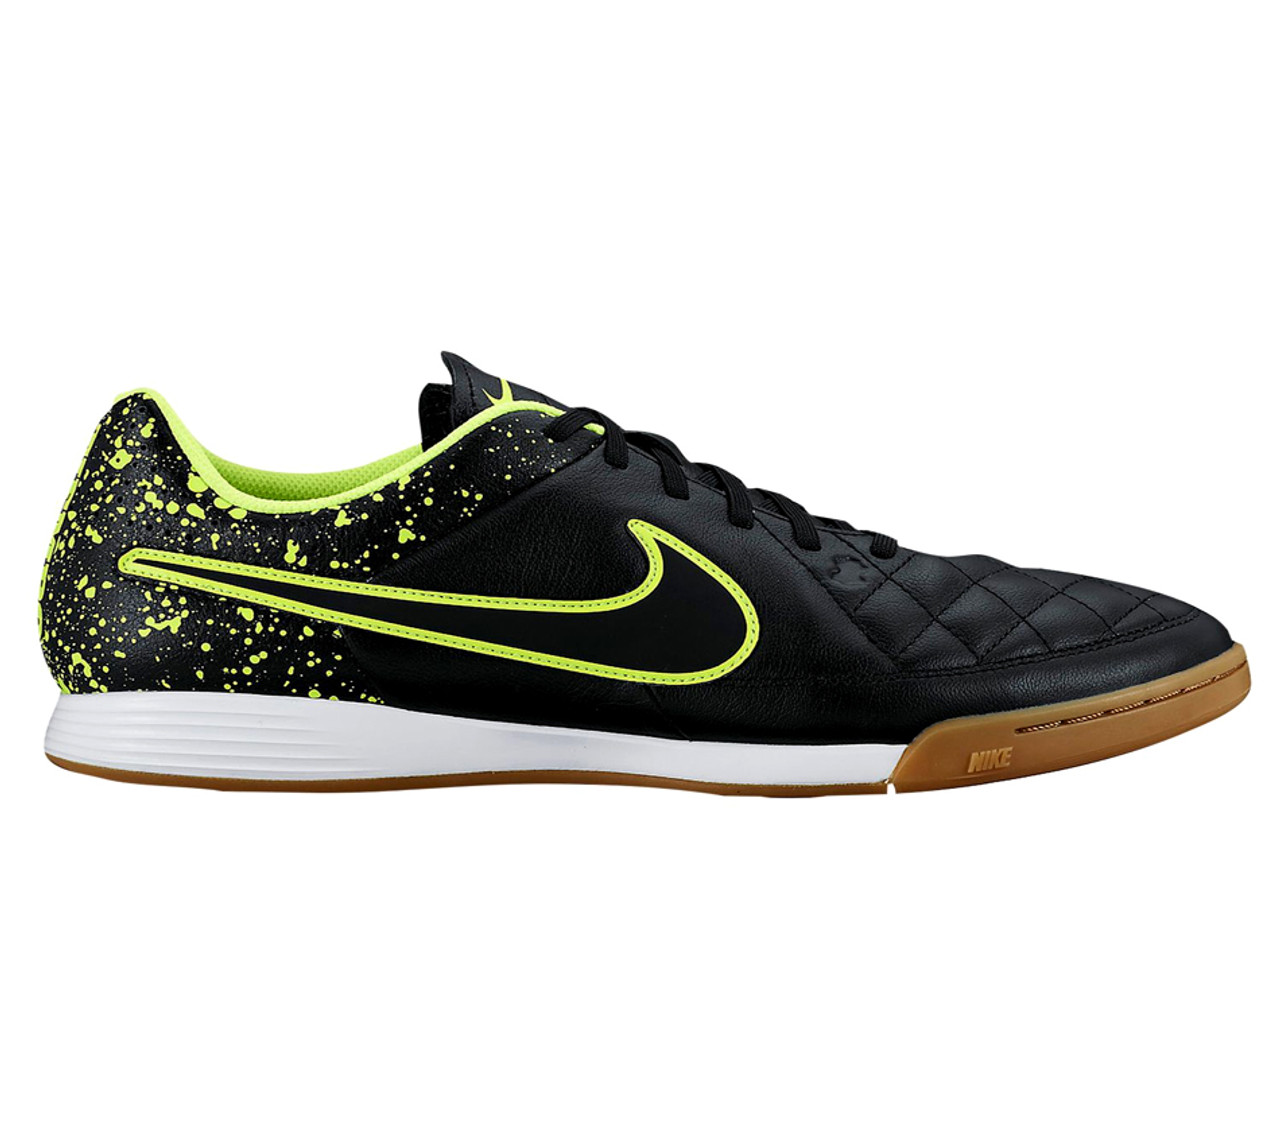 79b3037c9b4 NIKE TIEMPO GENIO LEATHER IC BLACK VOLT indoor soccer shoes - Soccer ...